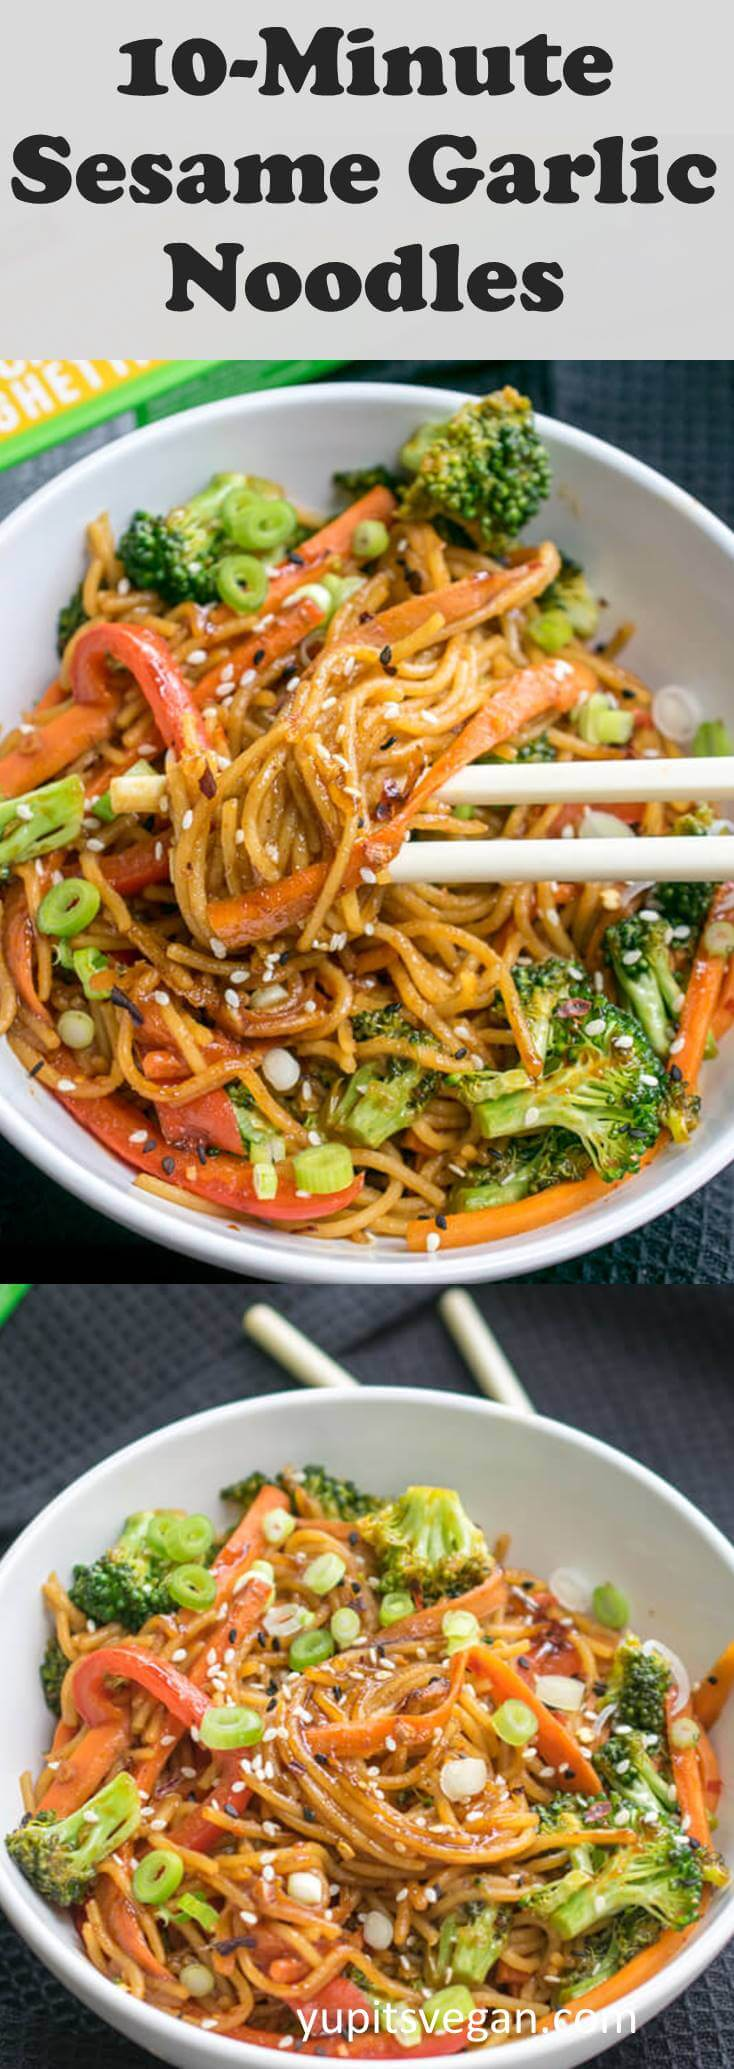 10-Minute Sesame Garlic Protein Noodles! Totally vegan, gluten-free, ready in 10 minutes of cooking, packed with protein, fiber, vitamins and veggies, and tastes better than takeout.